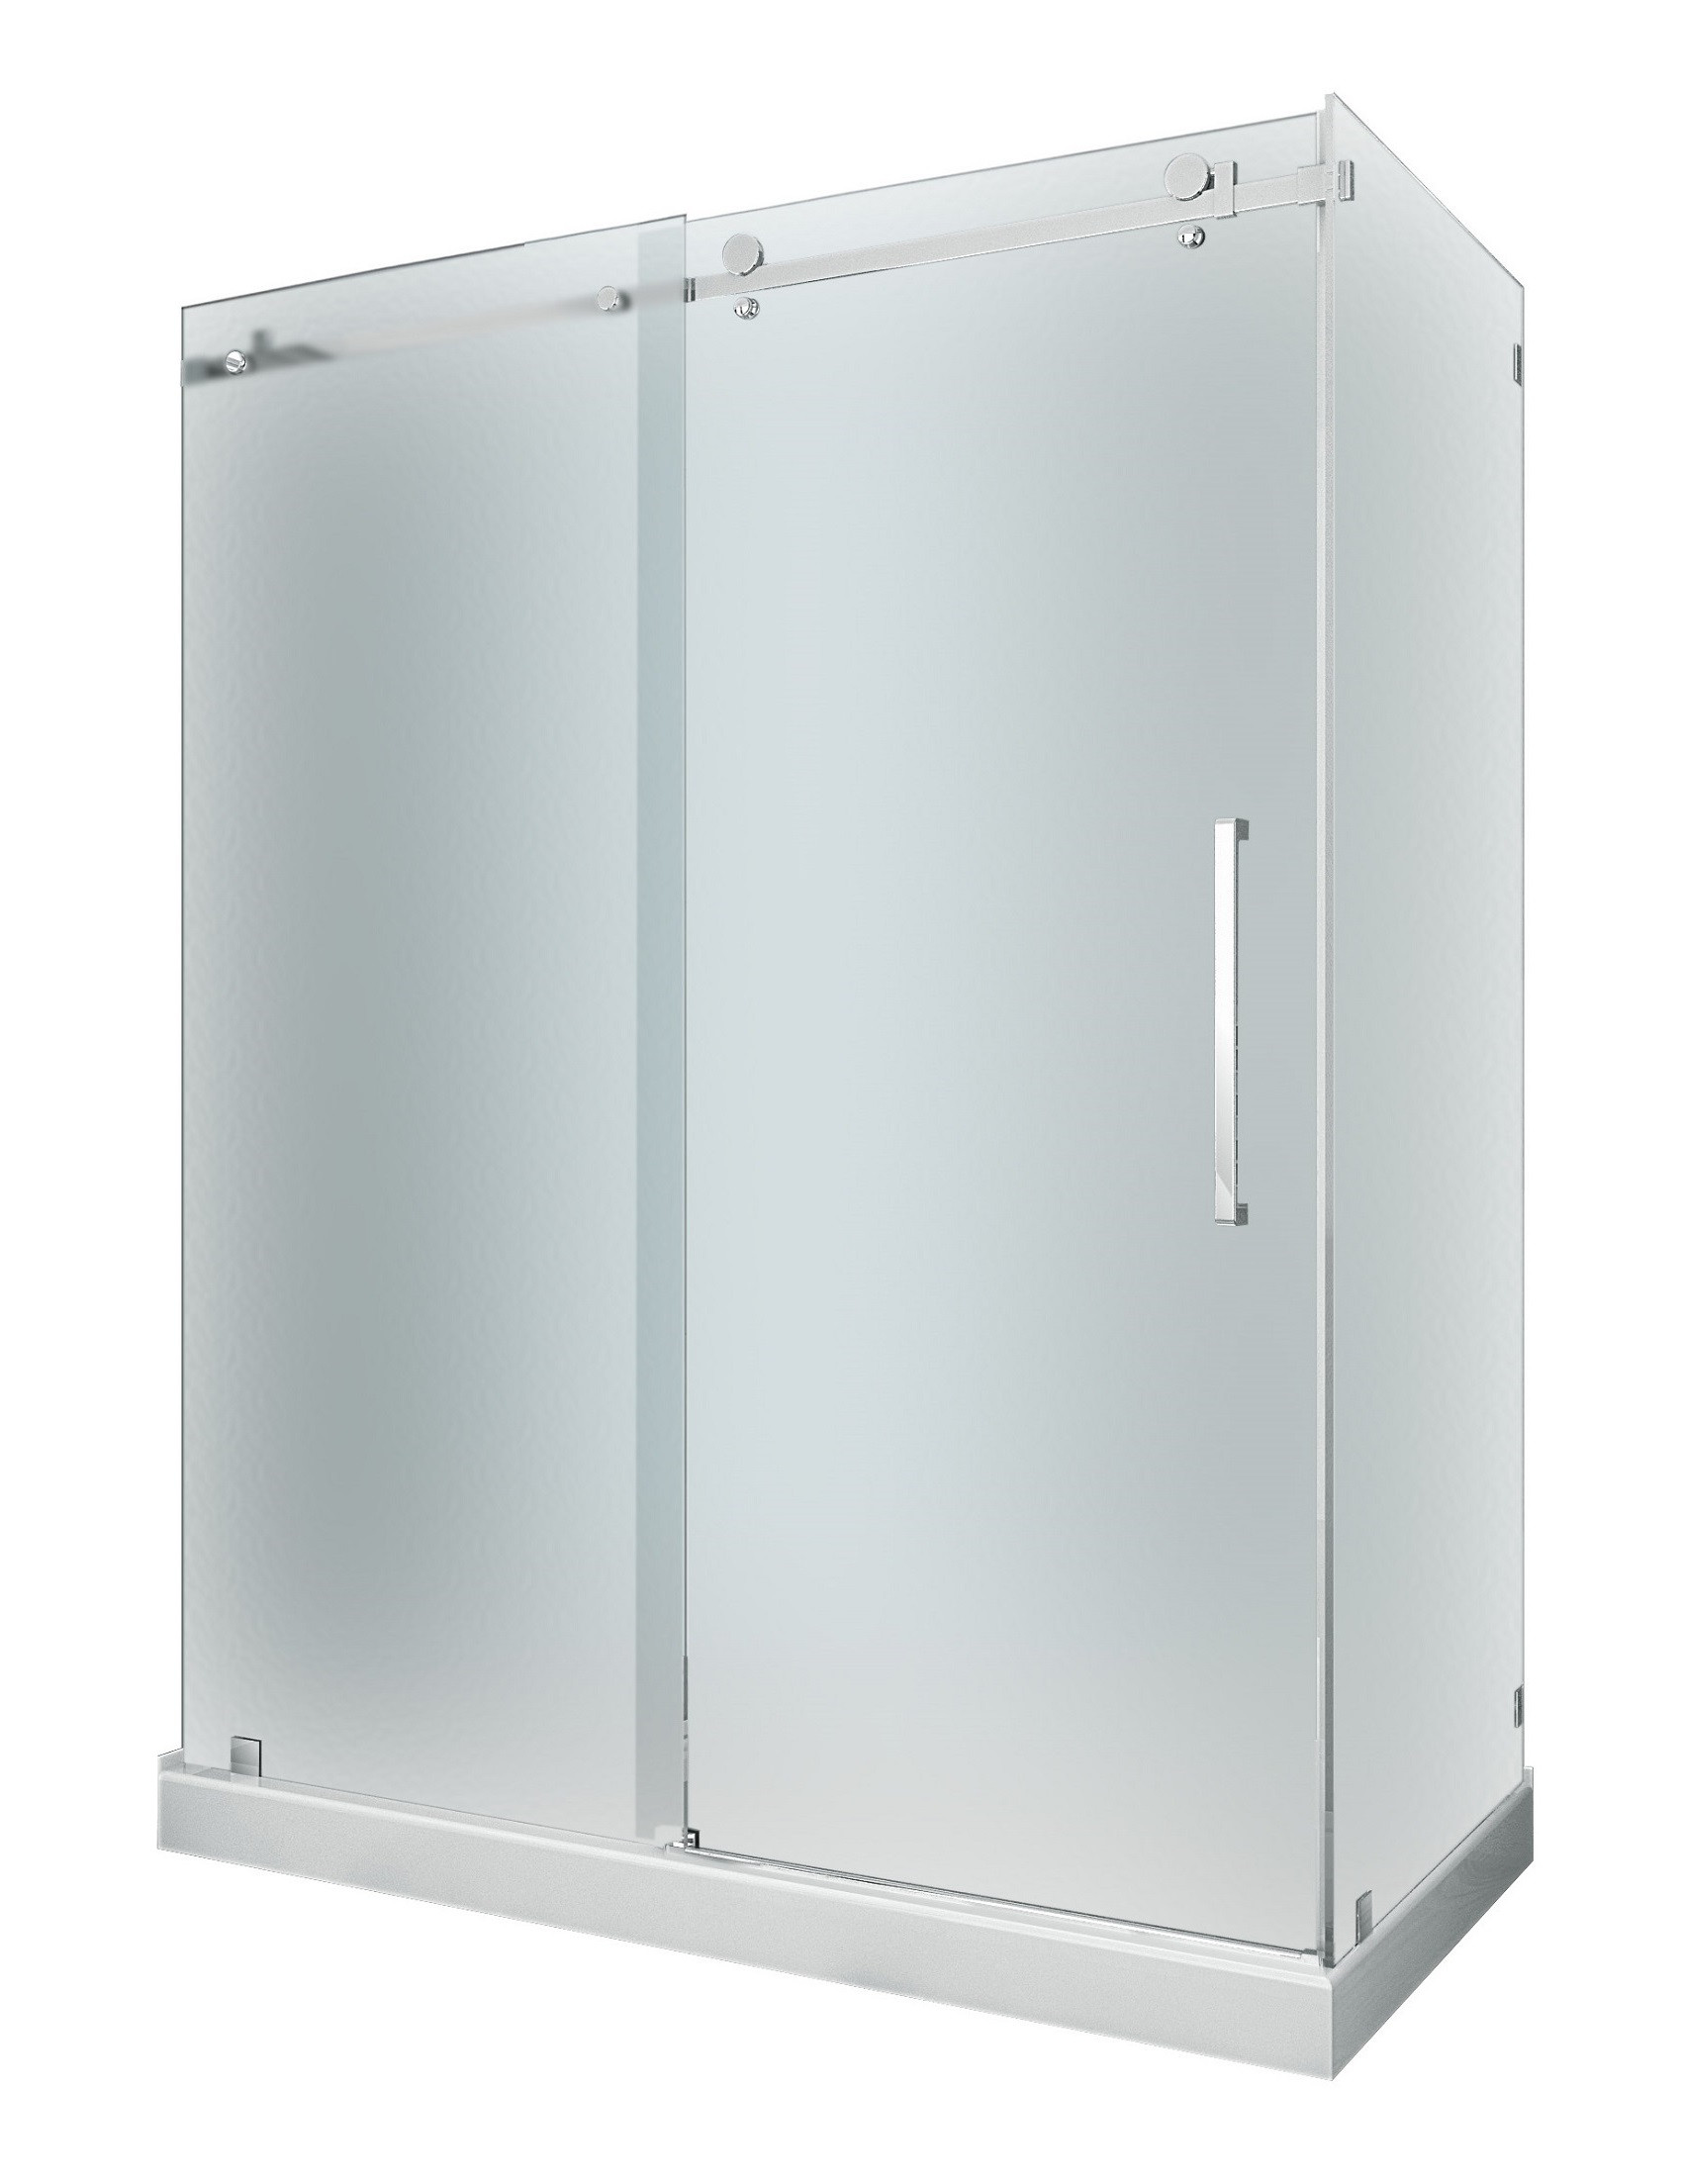 Aston Global SEN976F-TR-SS-60-10-R Sliding Shower Door Enclosure In Stainless Steel with Base